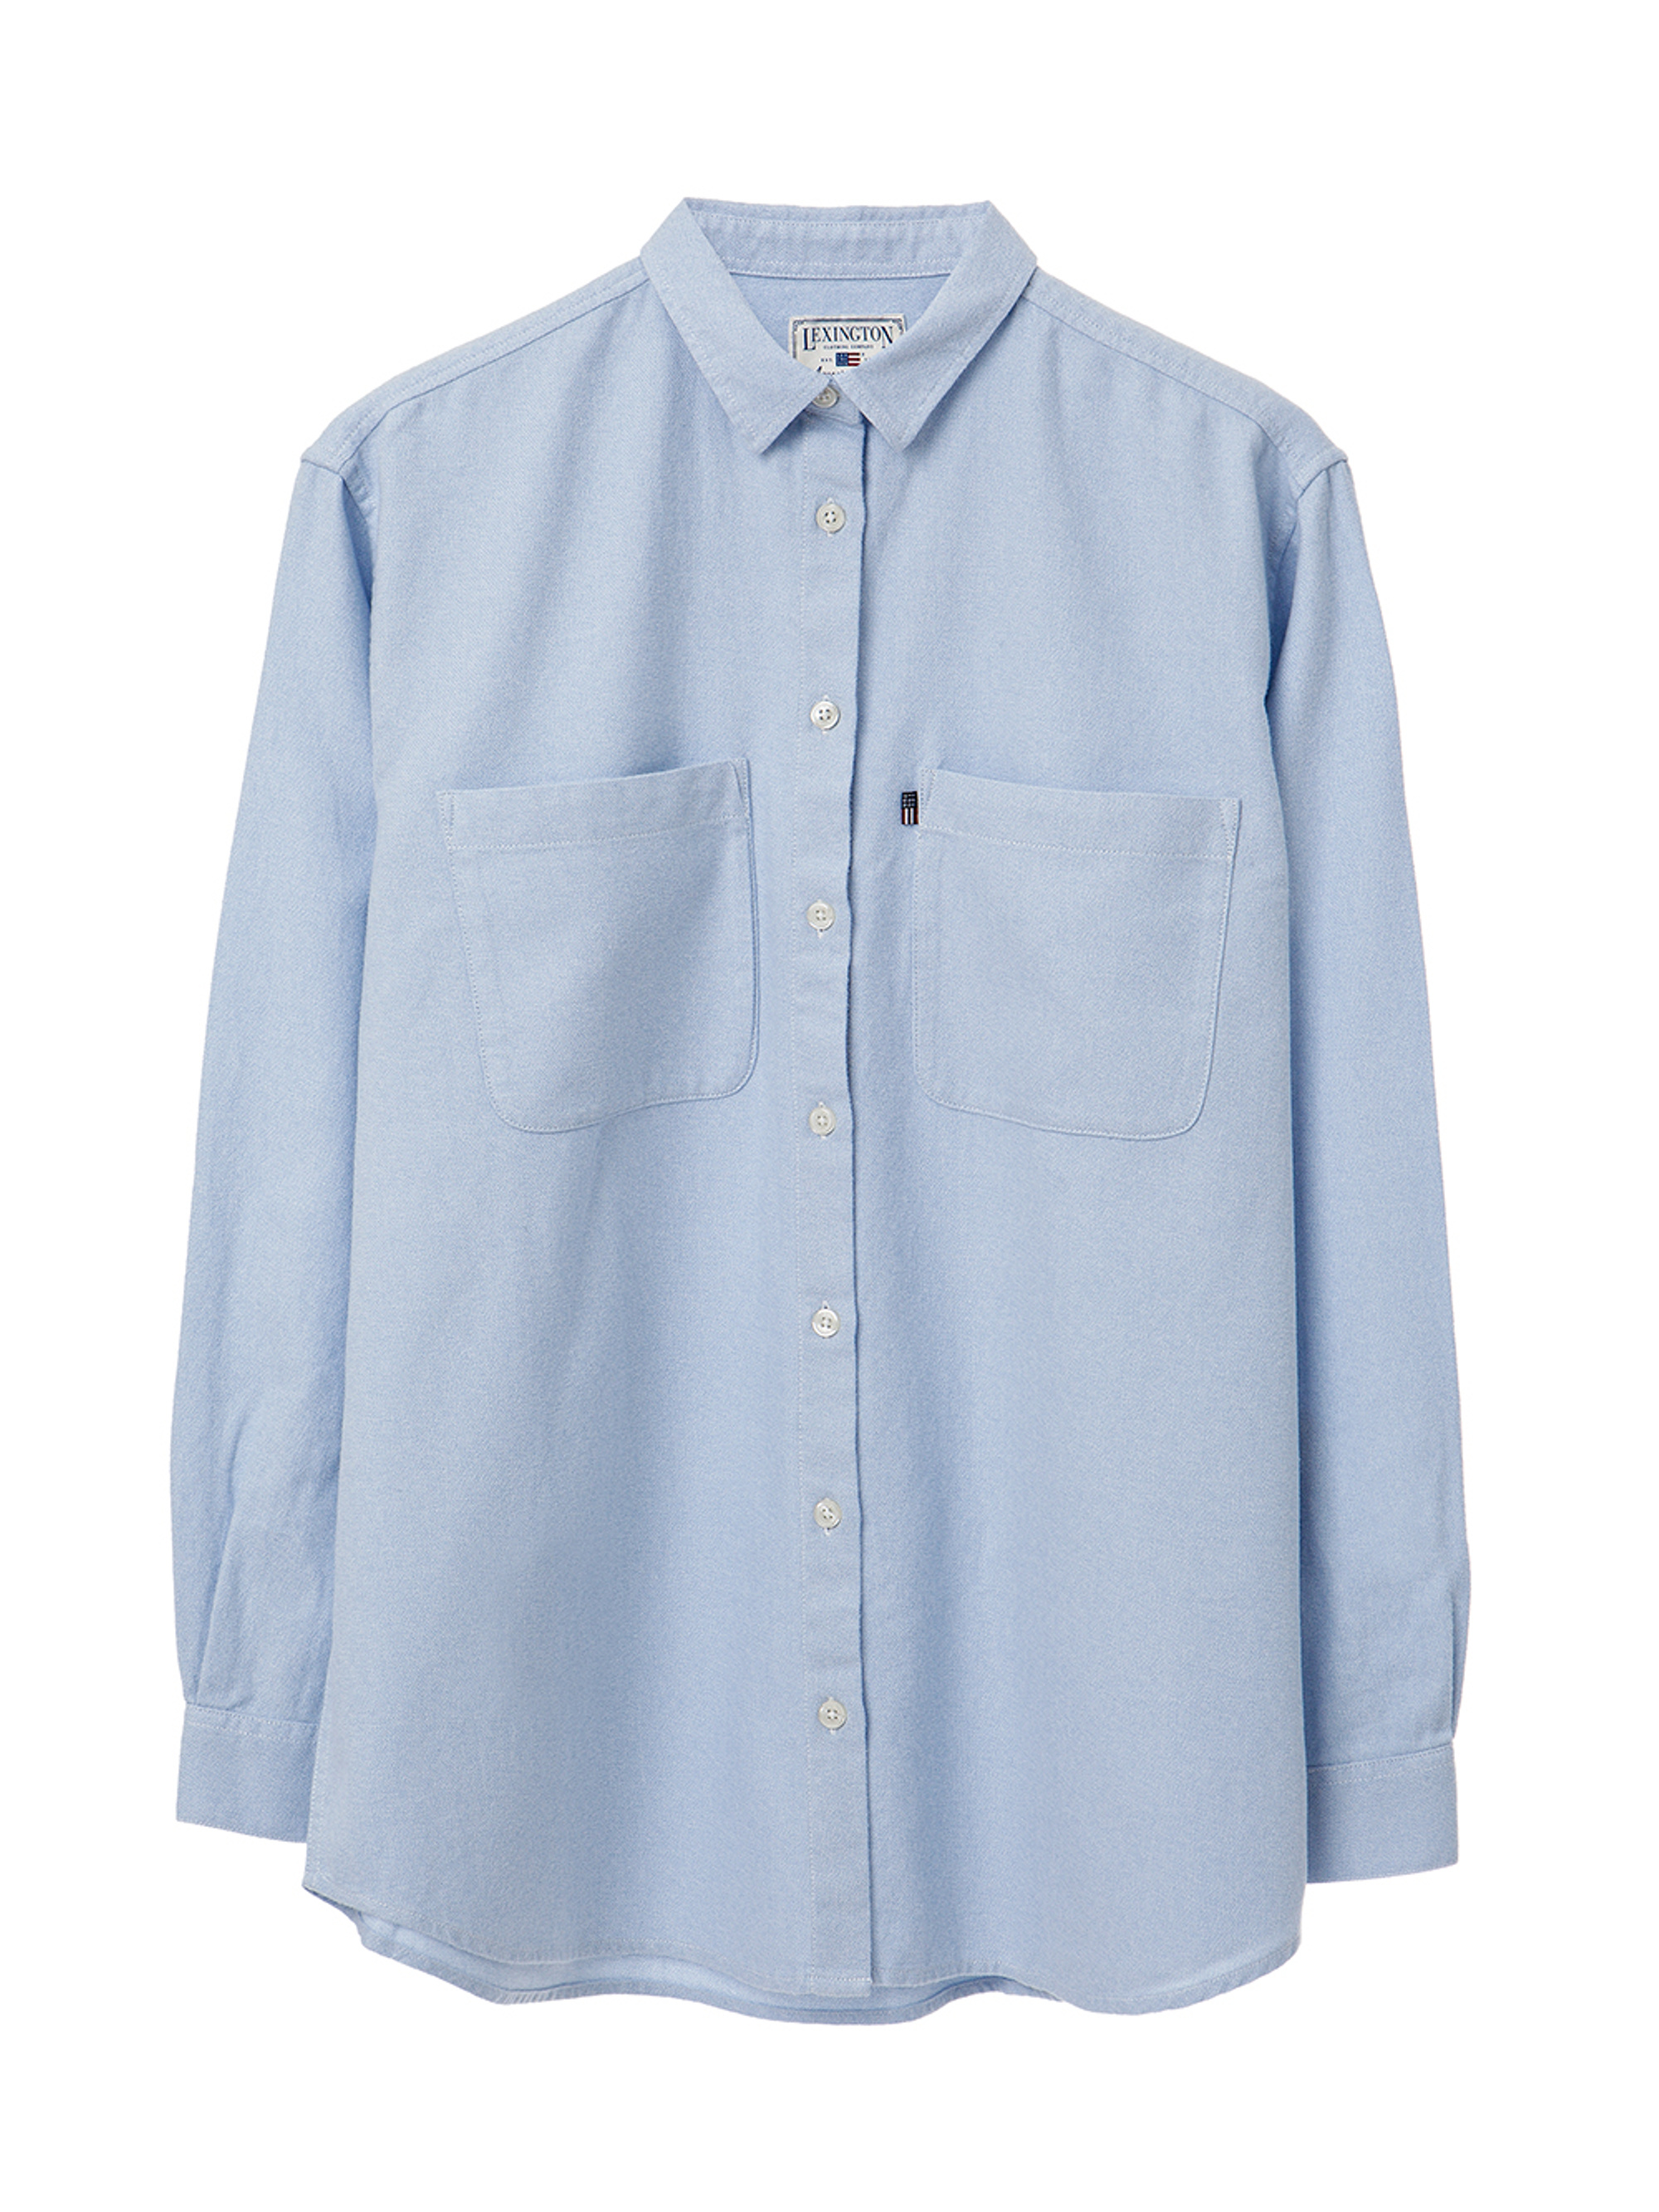 Zaira Flannel Shirt, Light Blue